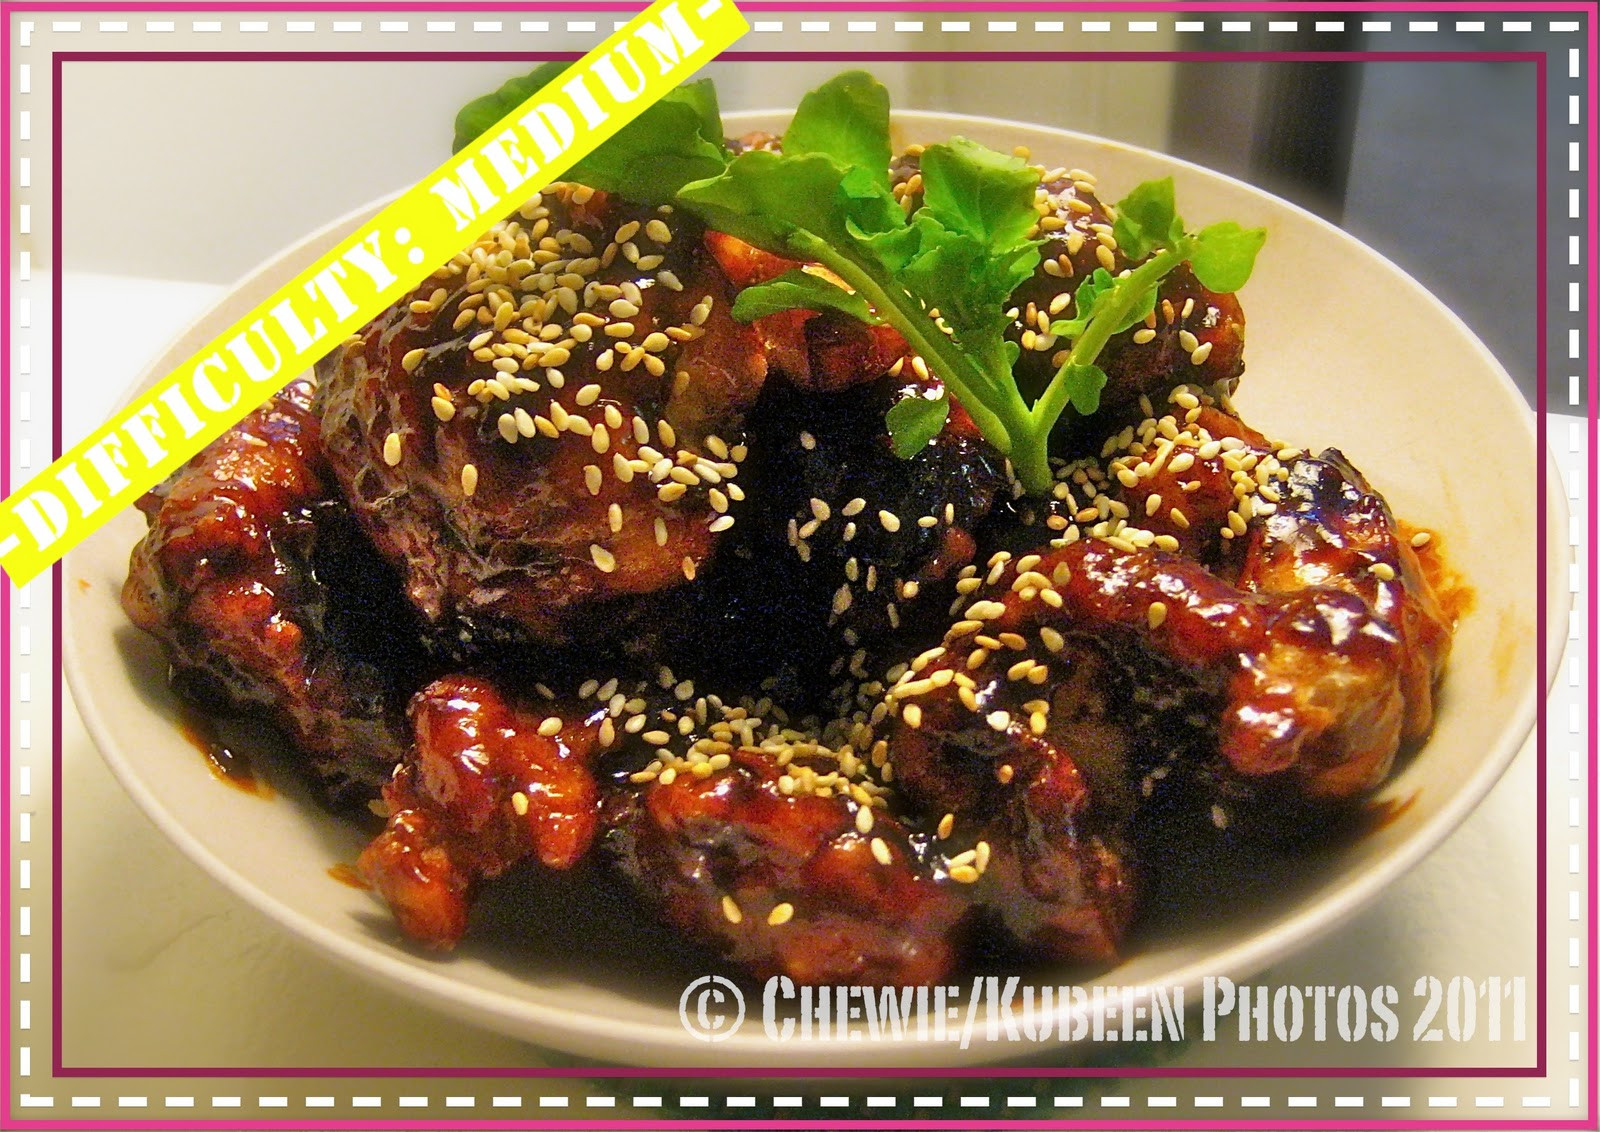 Chinese Pork Recipes  CHEWIE How to Make Traditional Asian Recipes How to Make